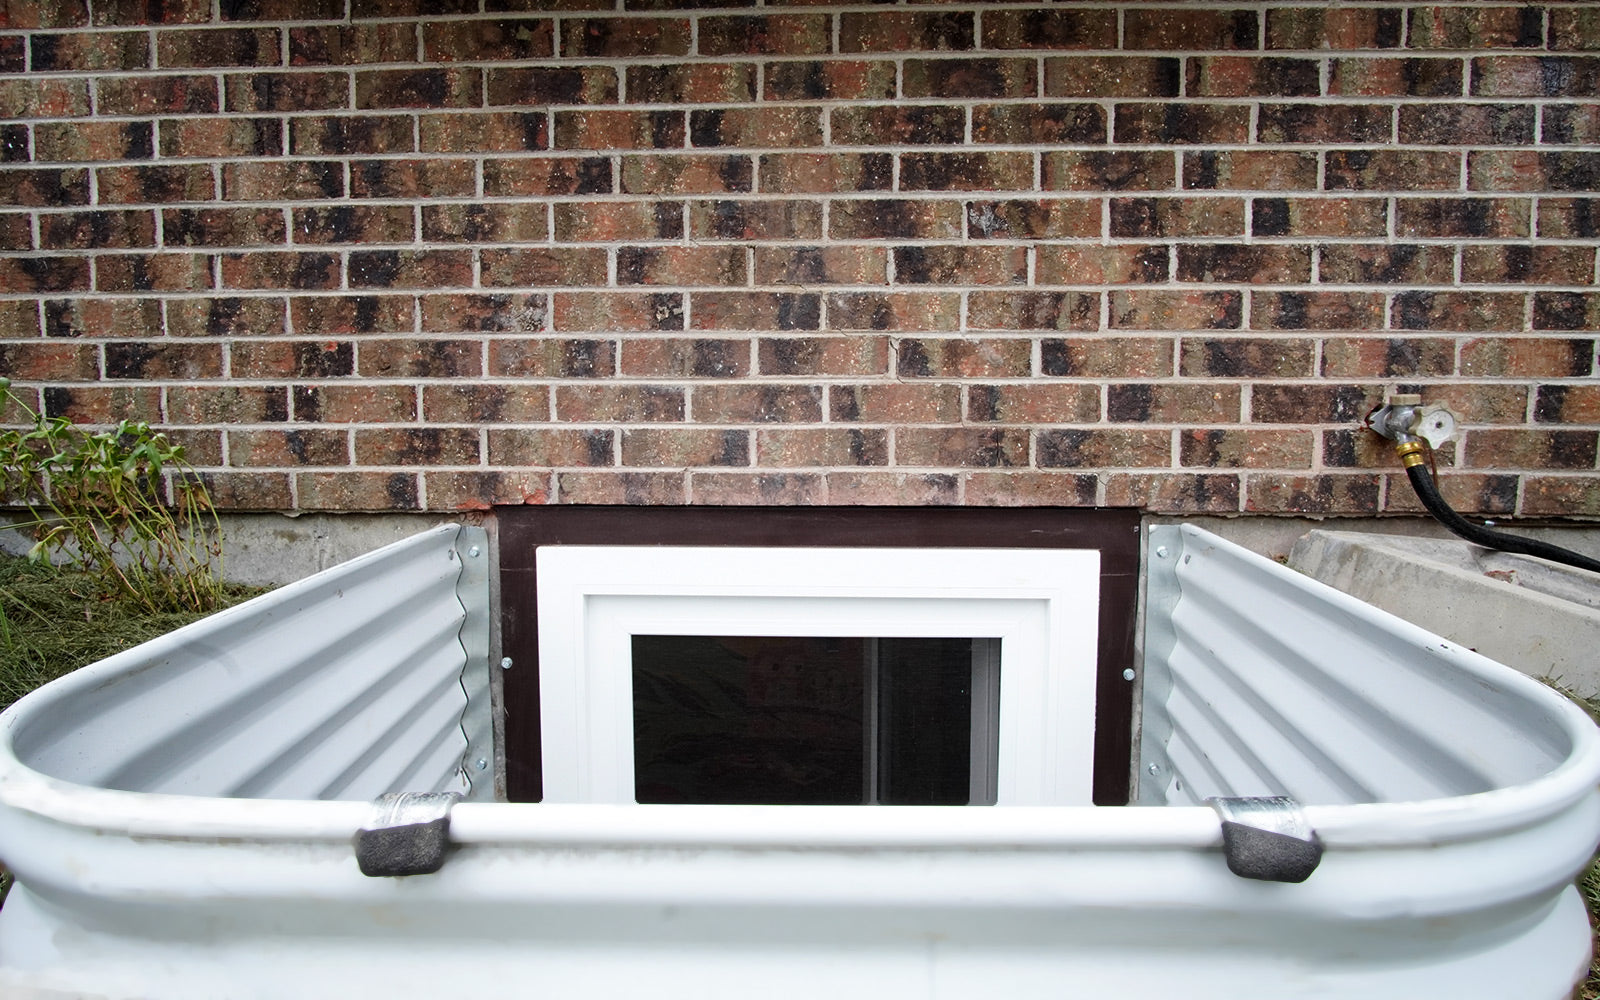 Why Inside Flanges on Window Wells Make Your Install Easier